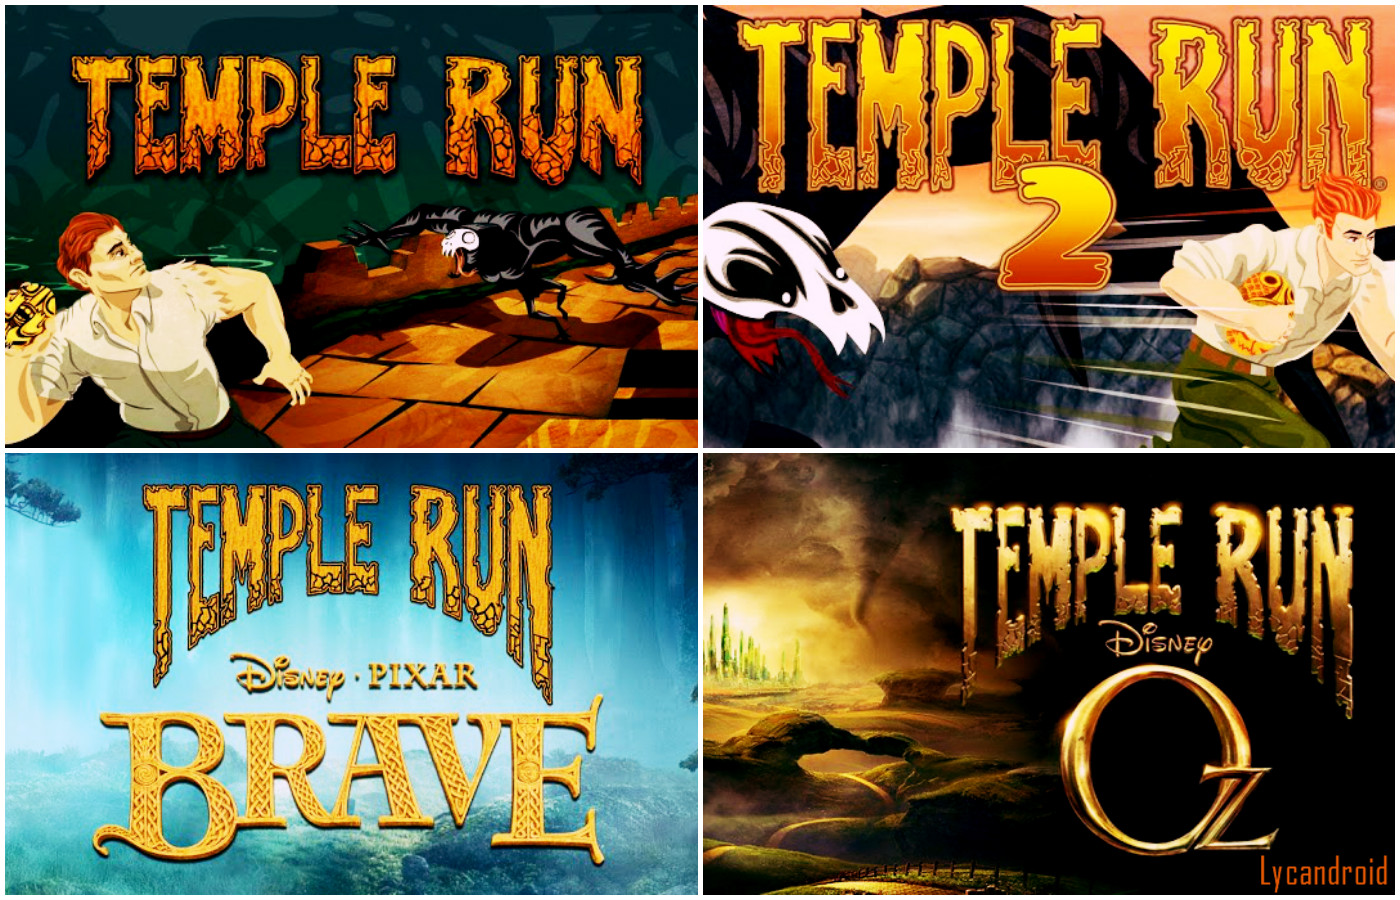 ... http://www.lycandroid.com/2013/03/all-temple-run-apk-collection.html